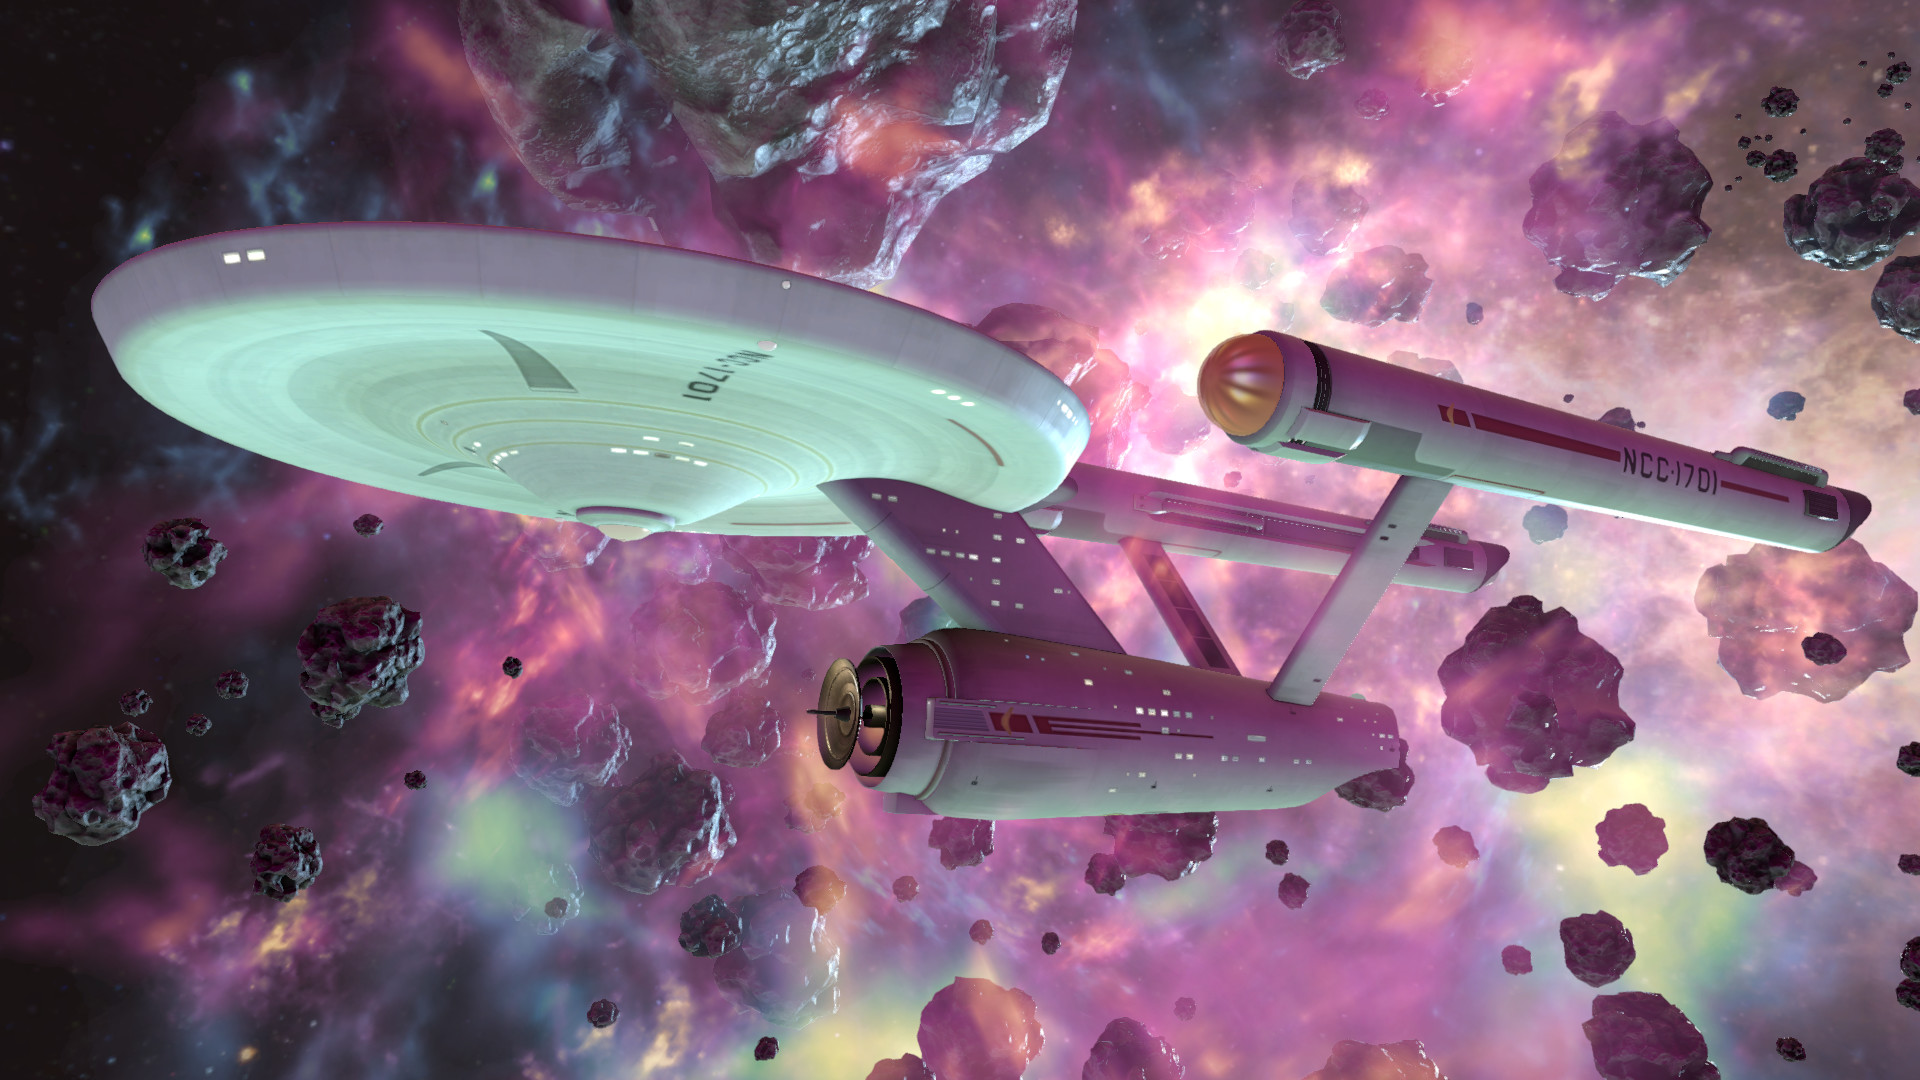 Live Long and Prosper! StarTrek VR multiplayer game is fast becoming a fan favourite [ Image source: www.store.steampowered.com/app/527100/Star_Trek_Bridge_Crew]